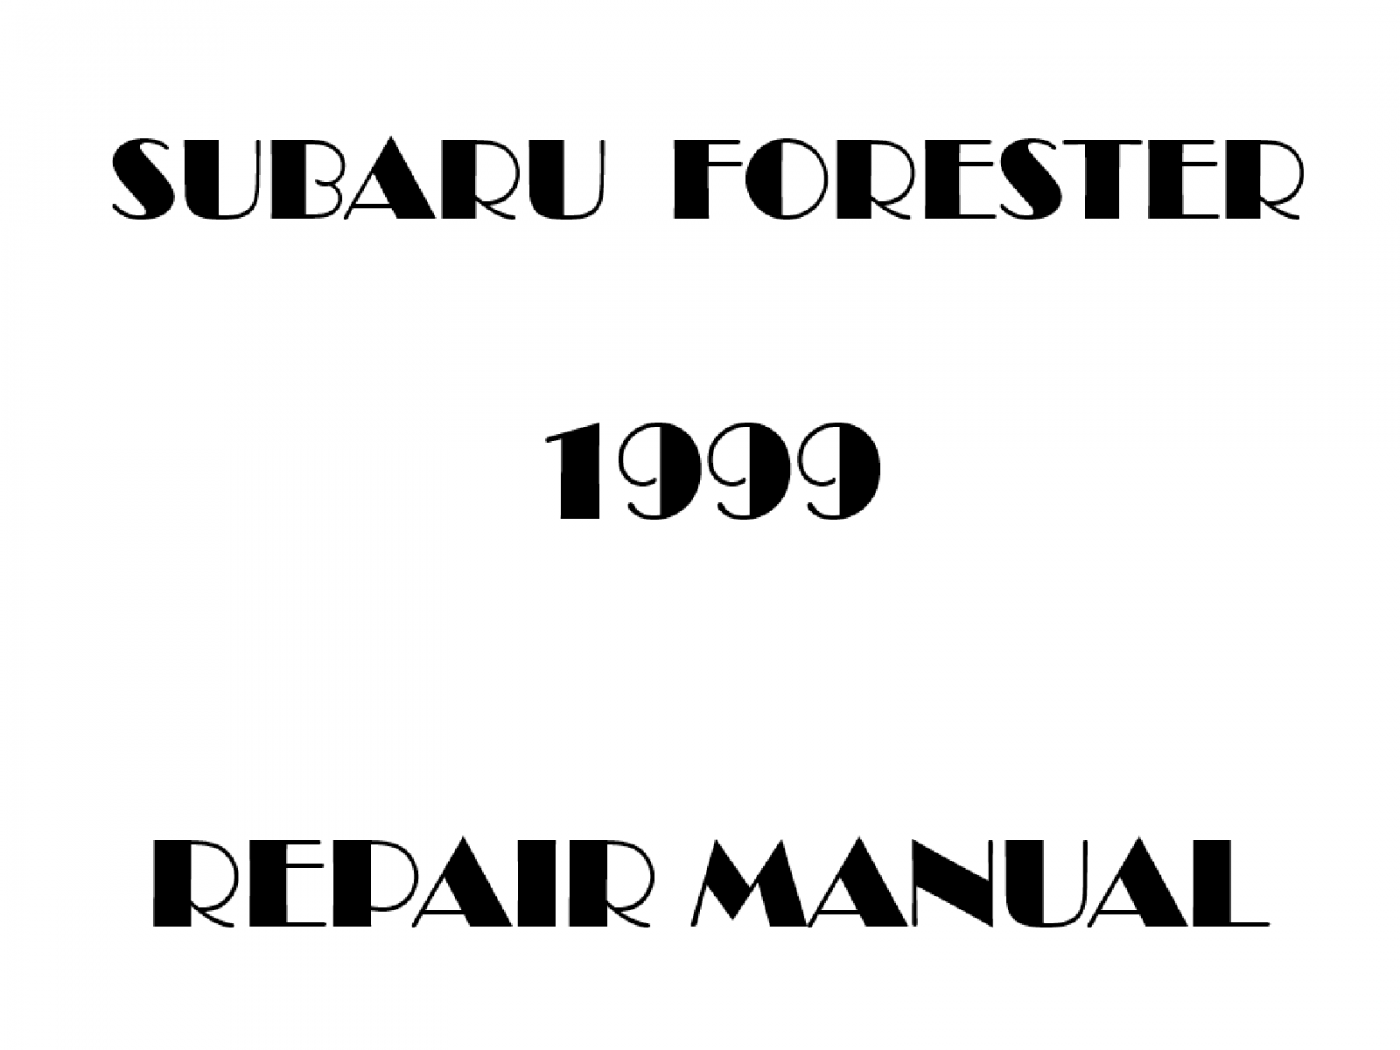 1999 Subaru Forester repair manual